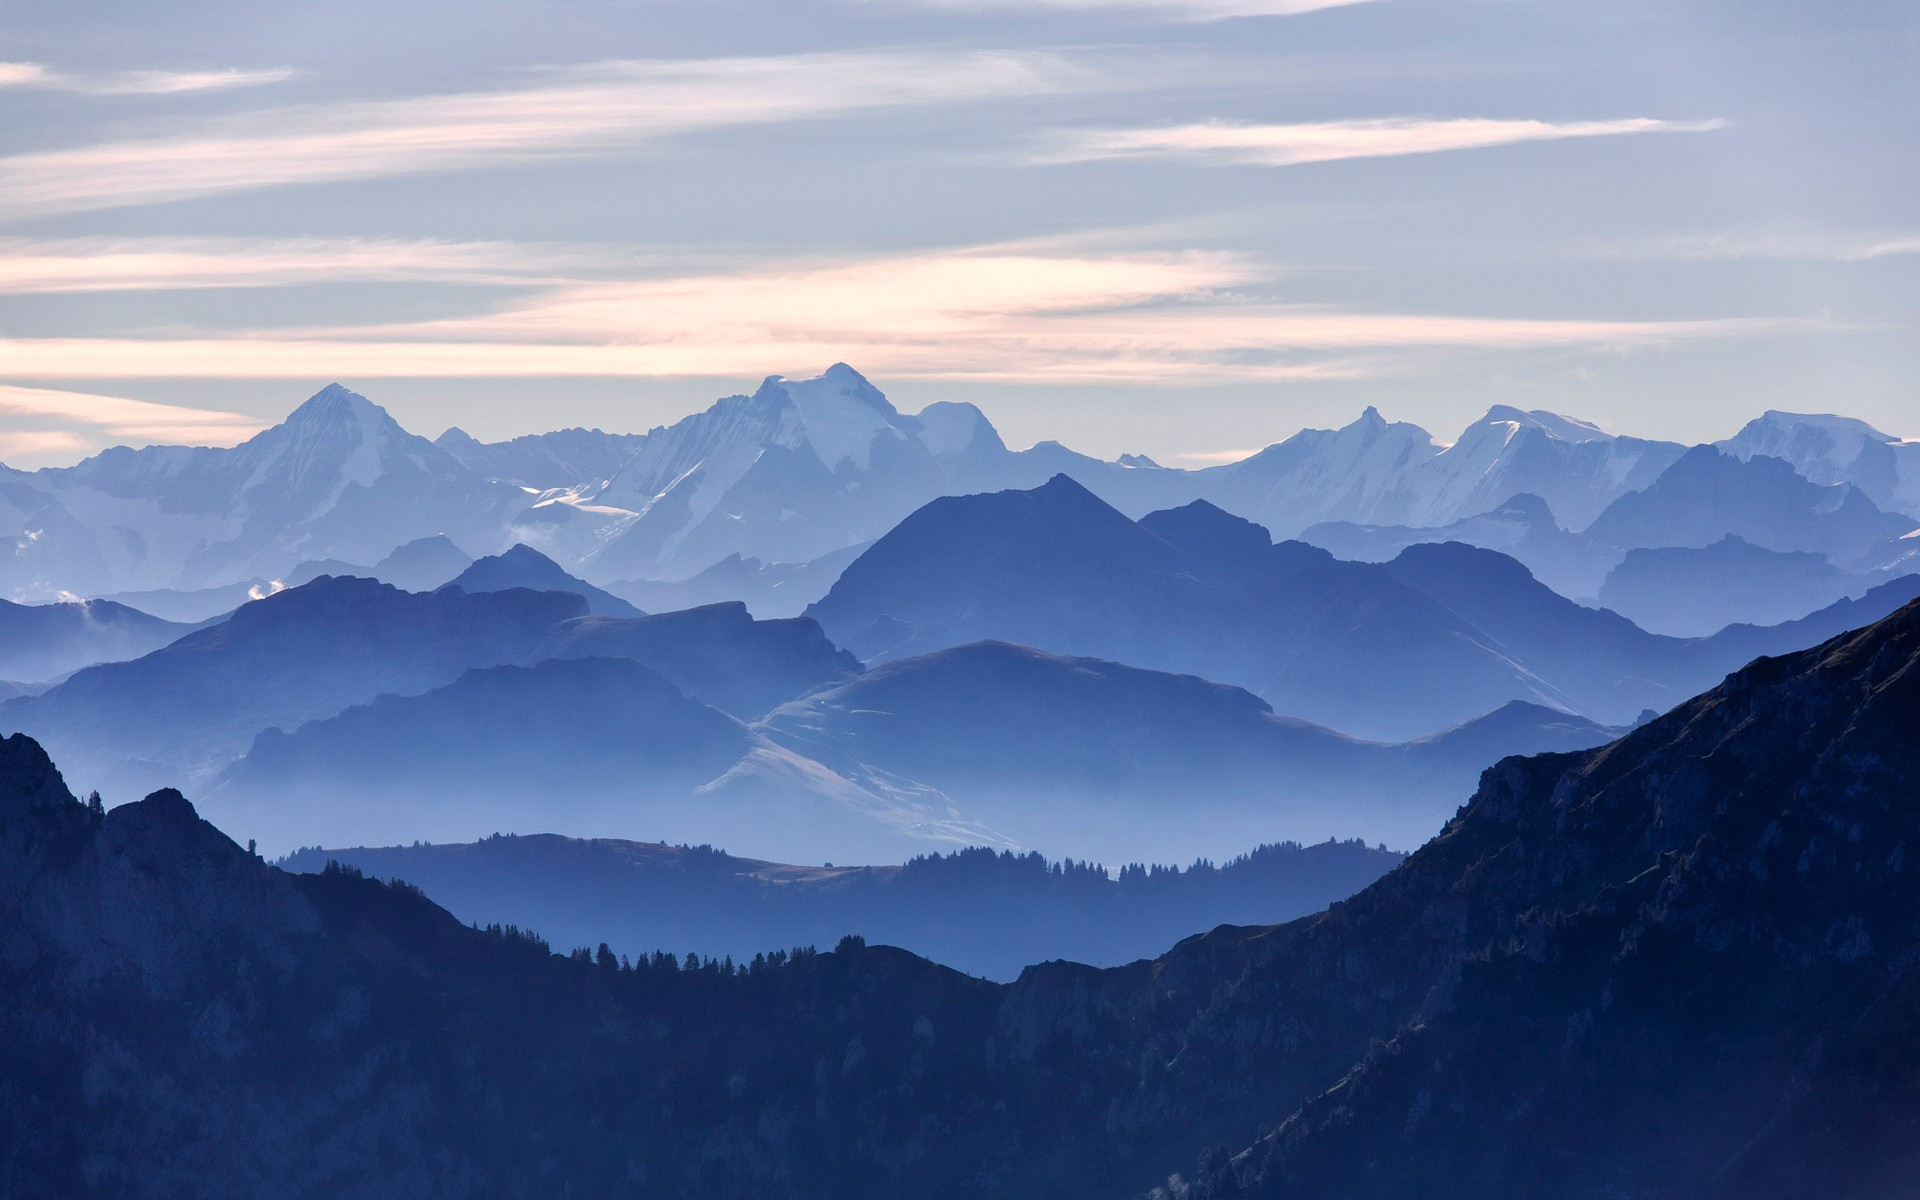 Top Wallpaper Mountain Blue - blue-mountains-clouds-distance-perspective-skies-1920x1200-wallpaper  Collection_682886.jpg